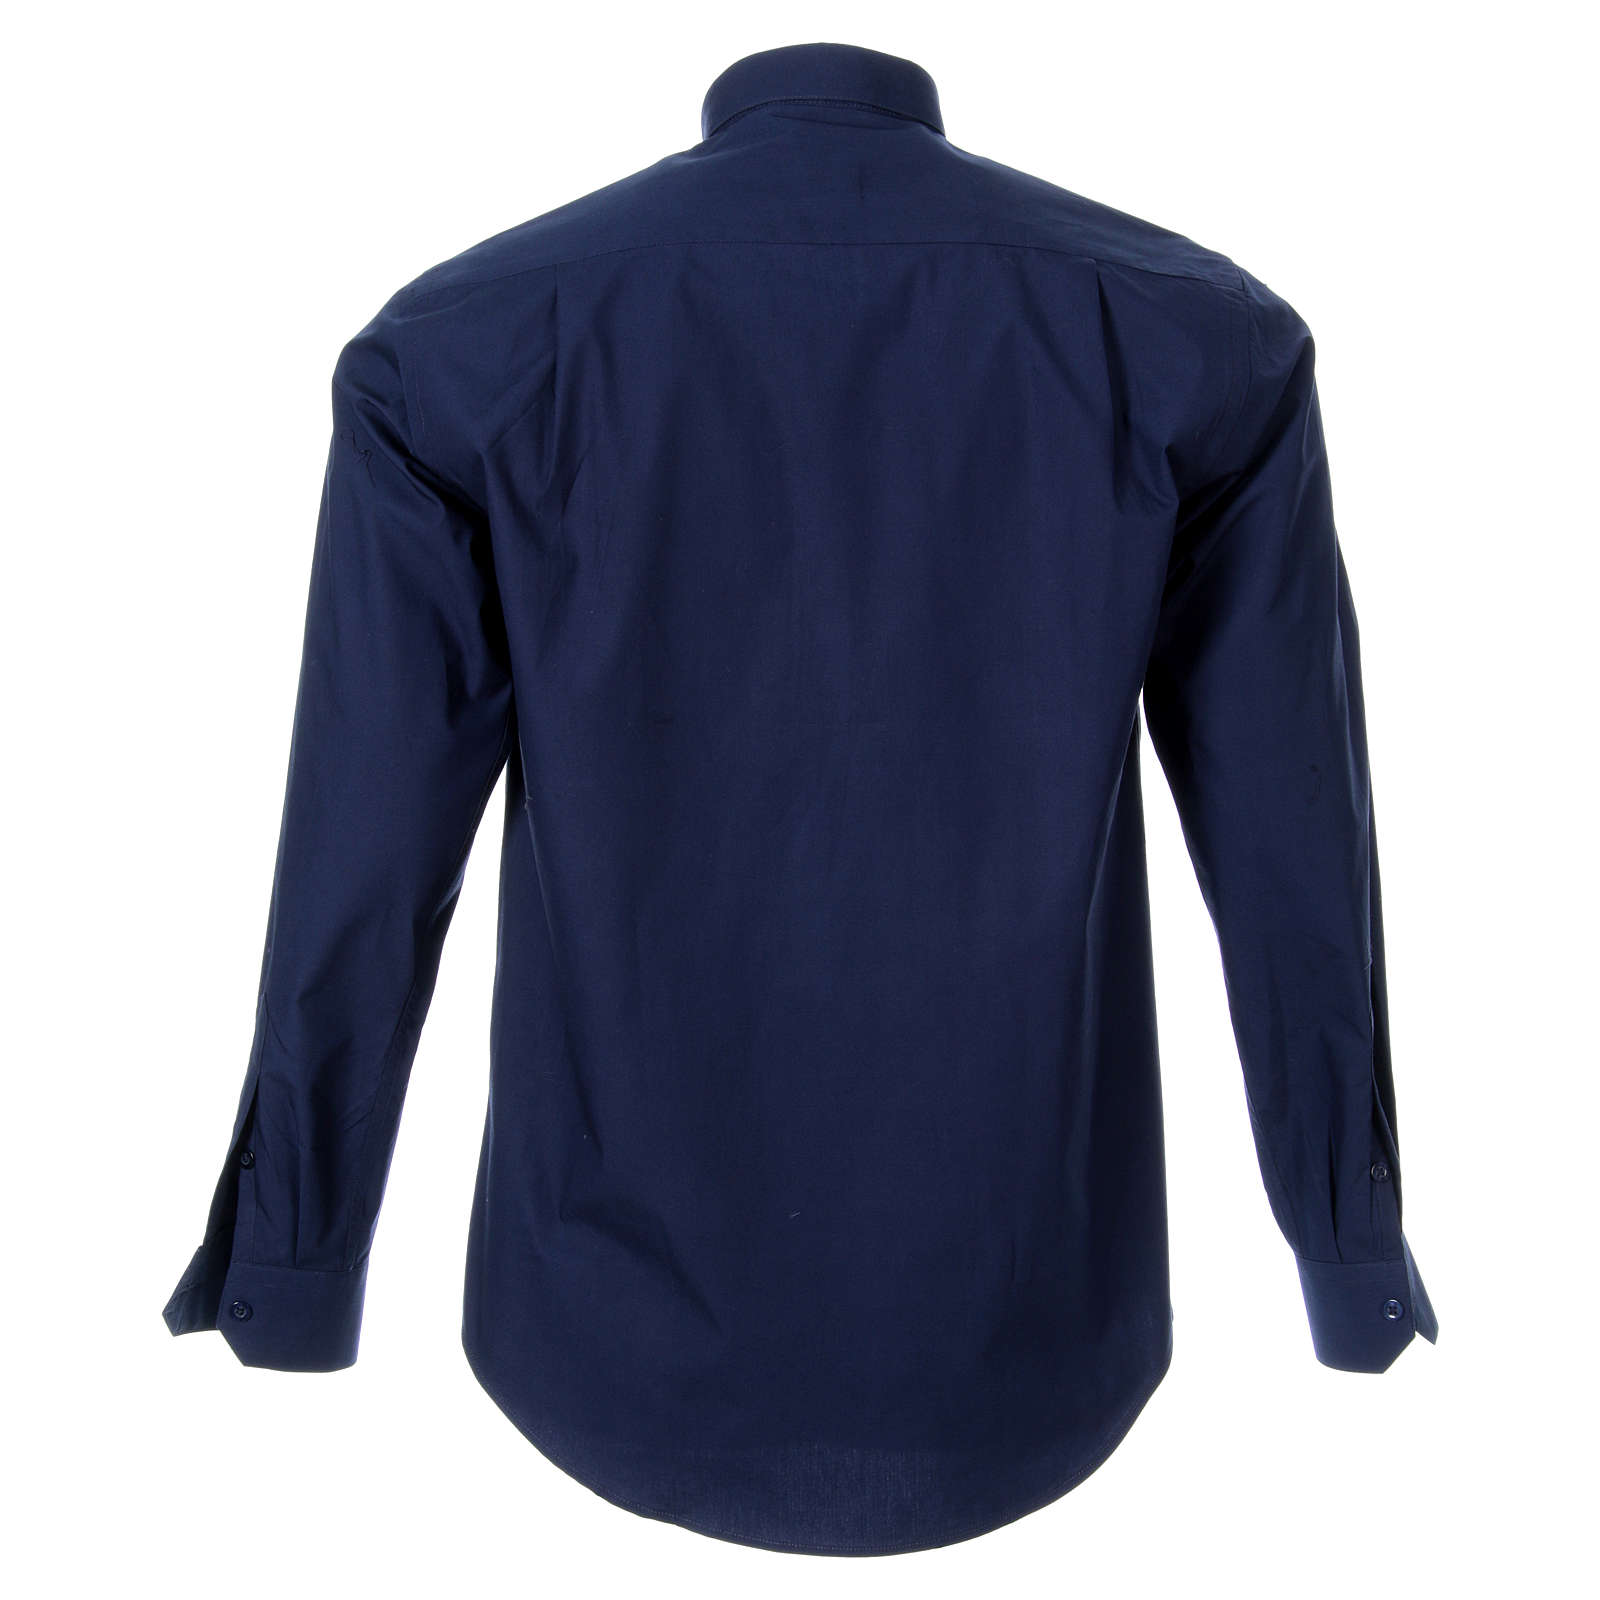 STOCK Clergyman shirt, long sleeves, blue poplin 4